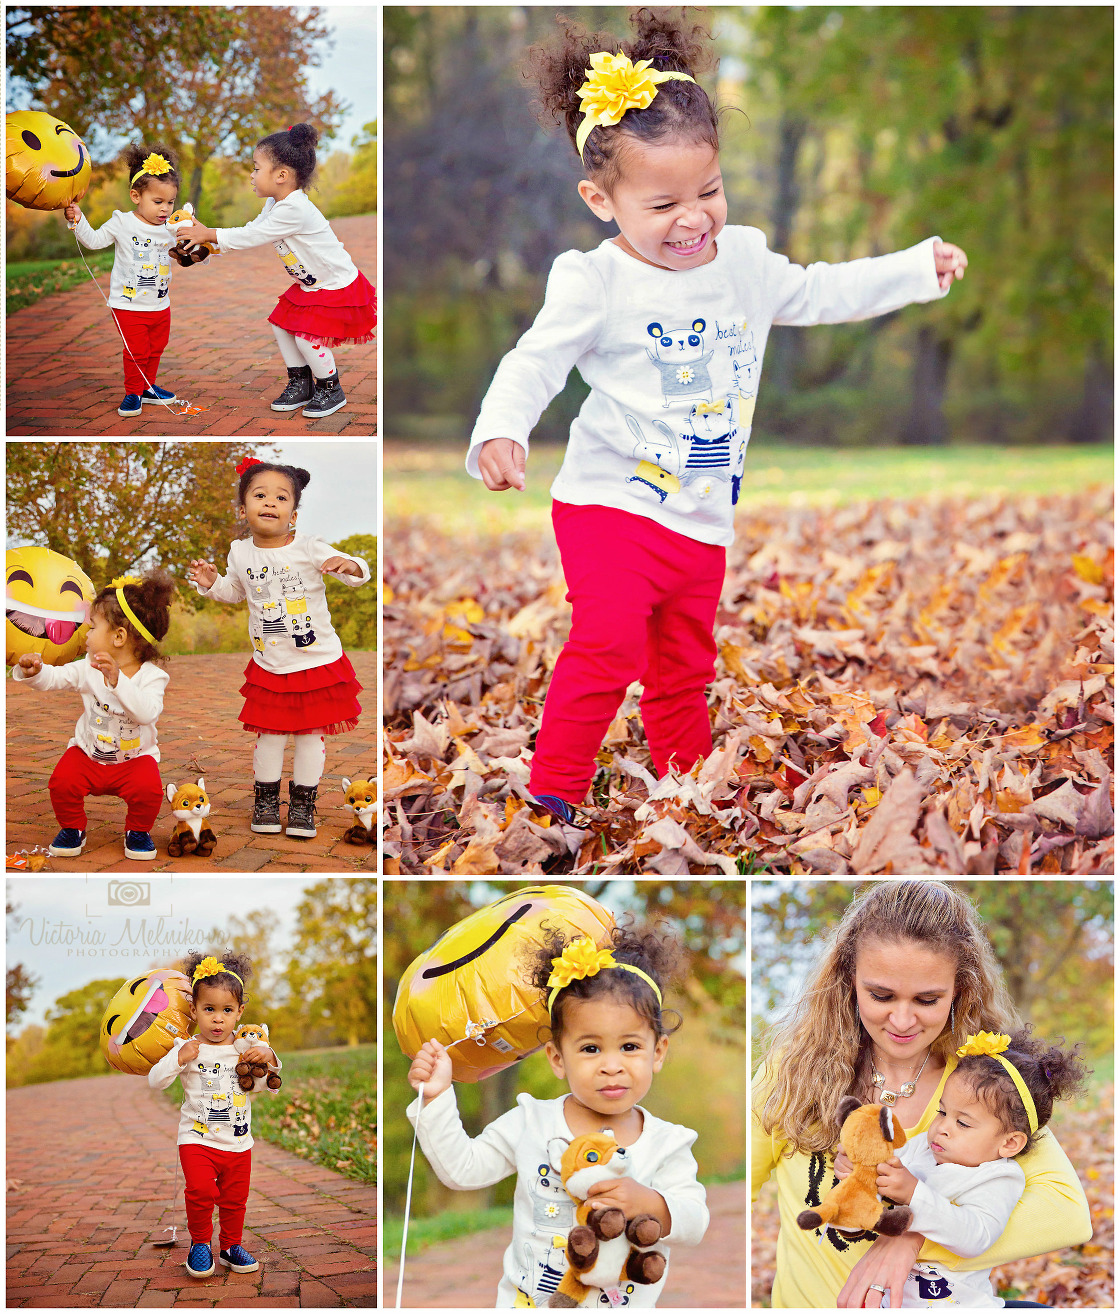 fall-2-years-old-photo-ideas